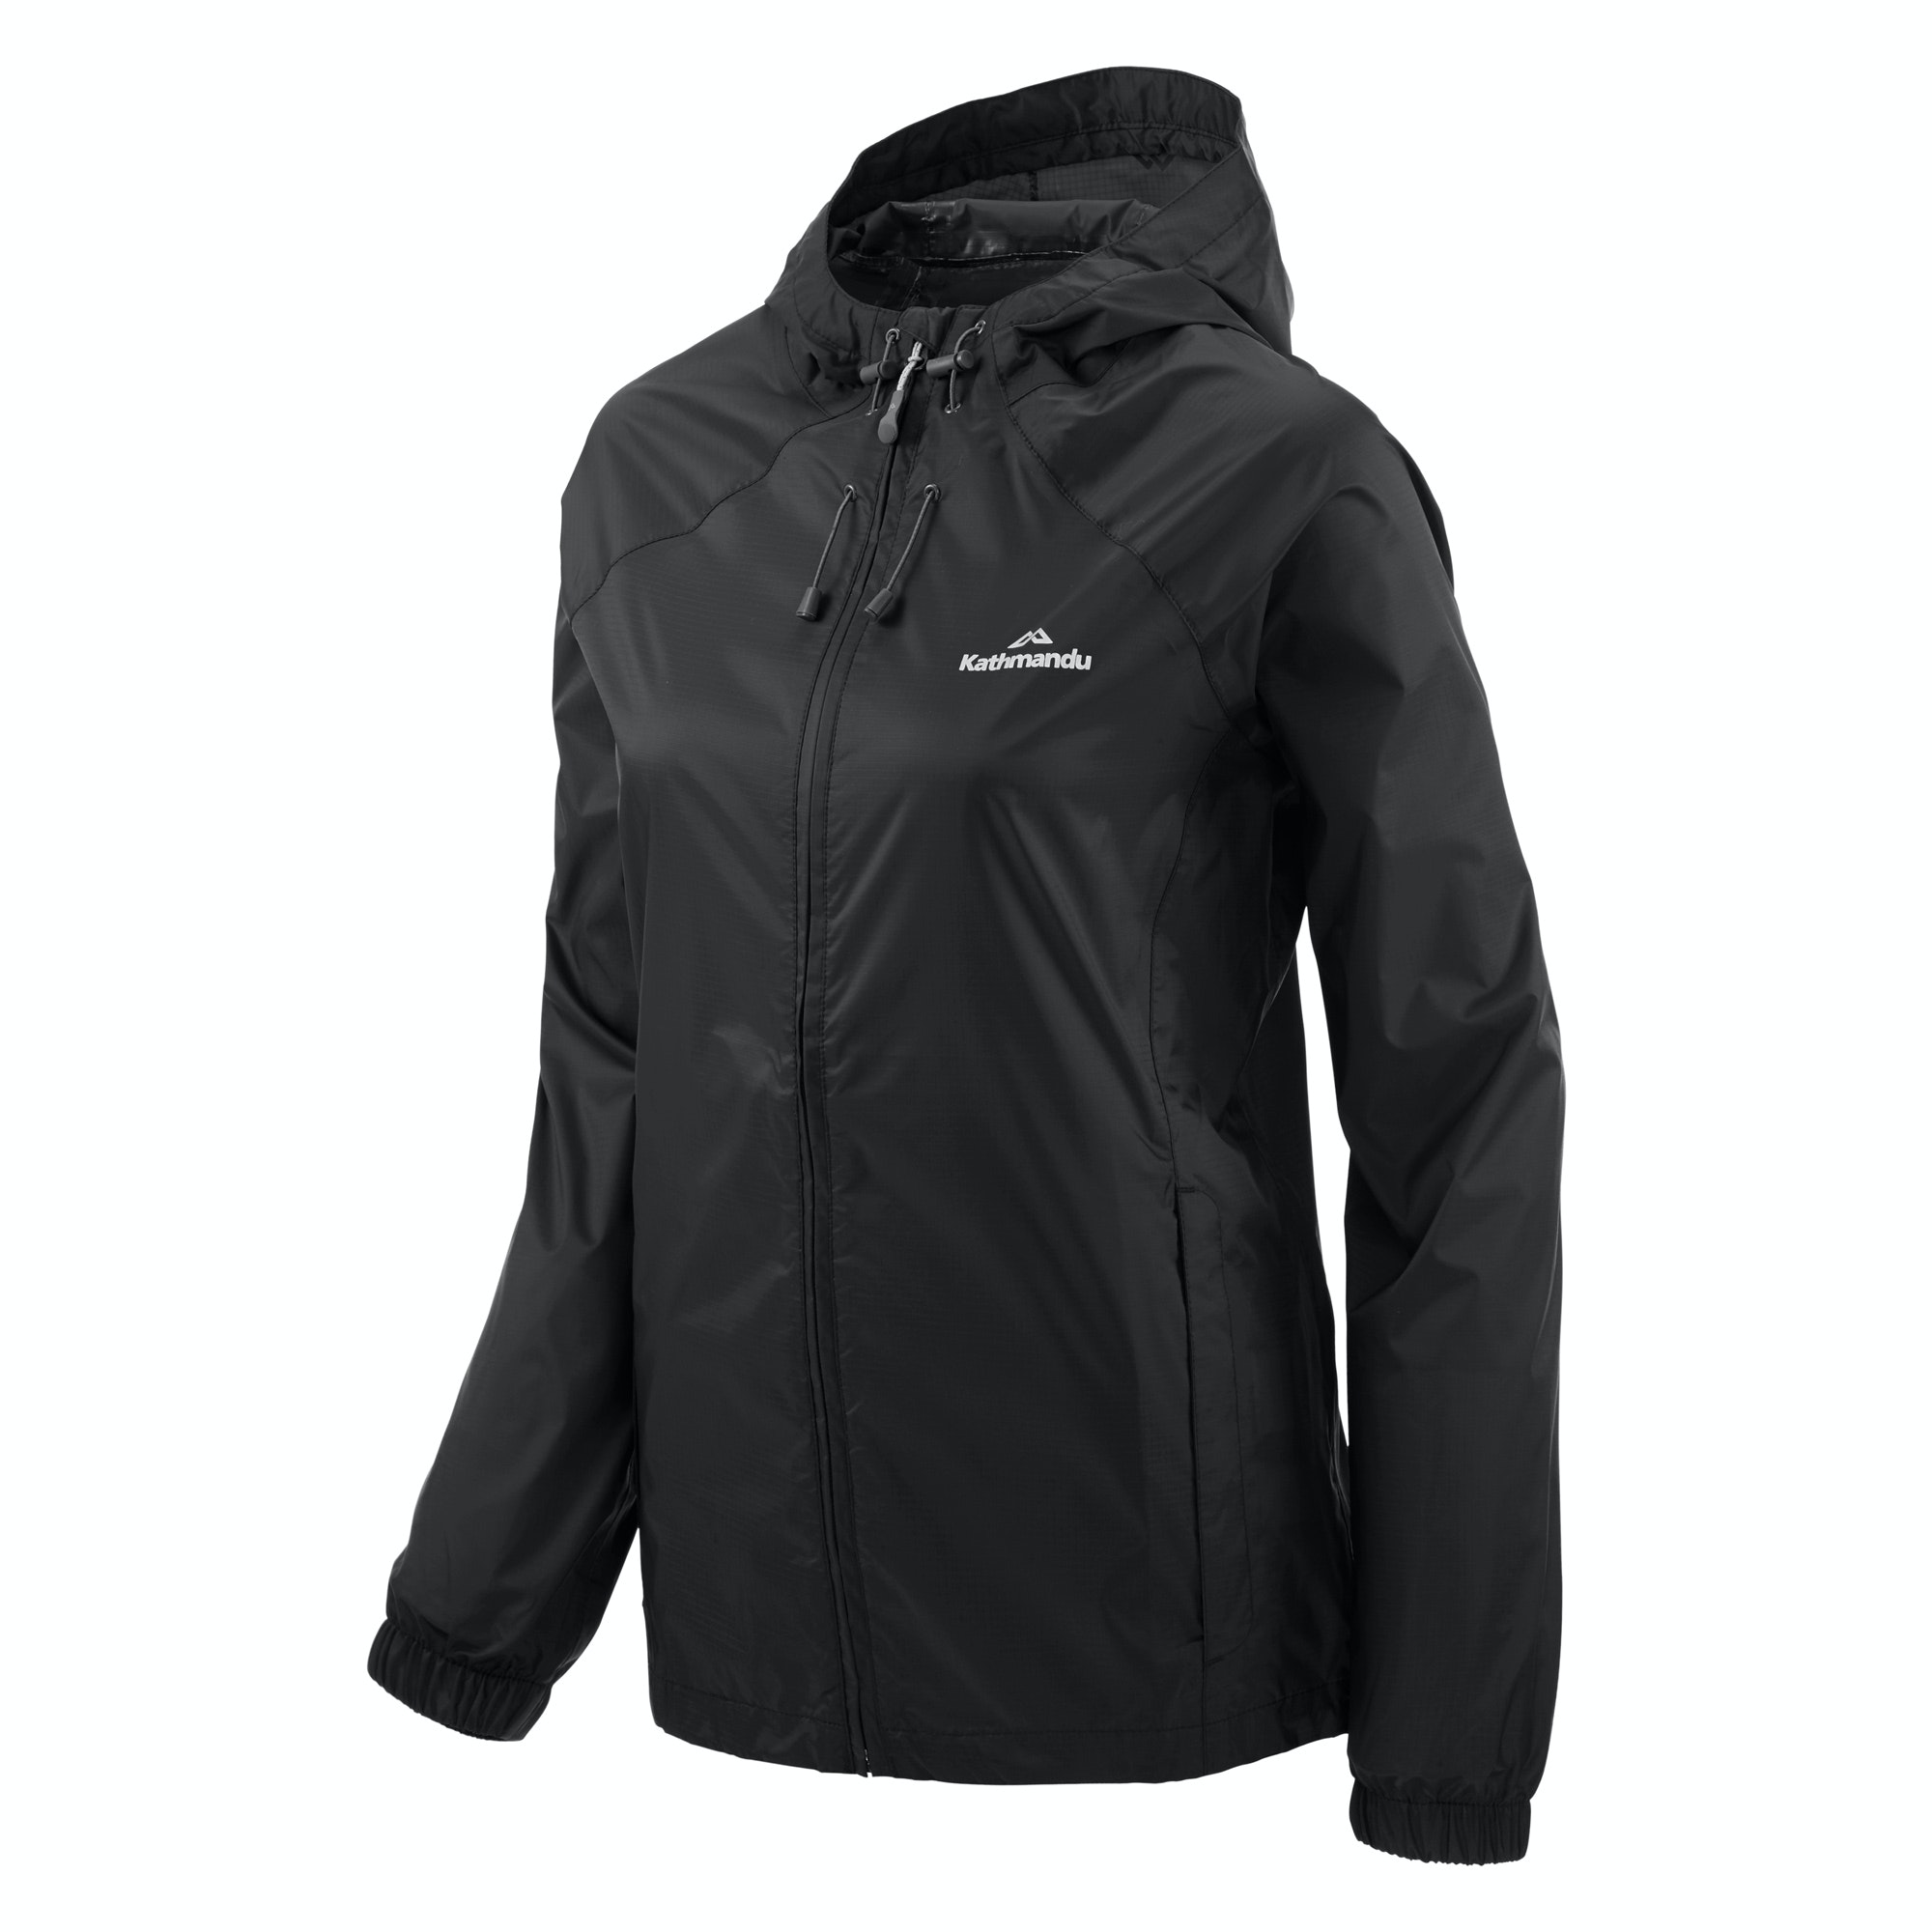 NEW-Kathmandu-Pocket-it-Women-039-s-Hooded-Water-Resistant-Packaway-Light-Rain thumbnail 9